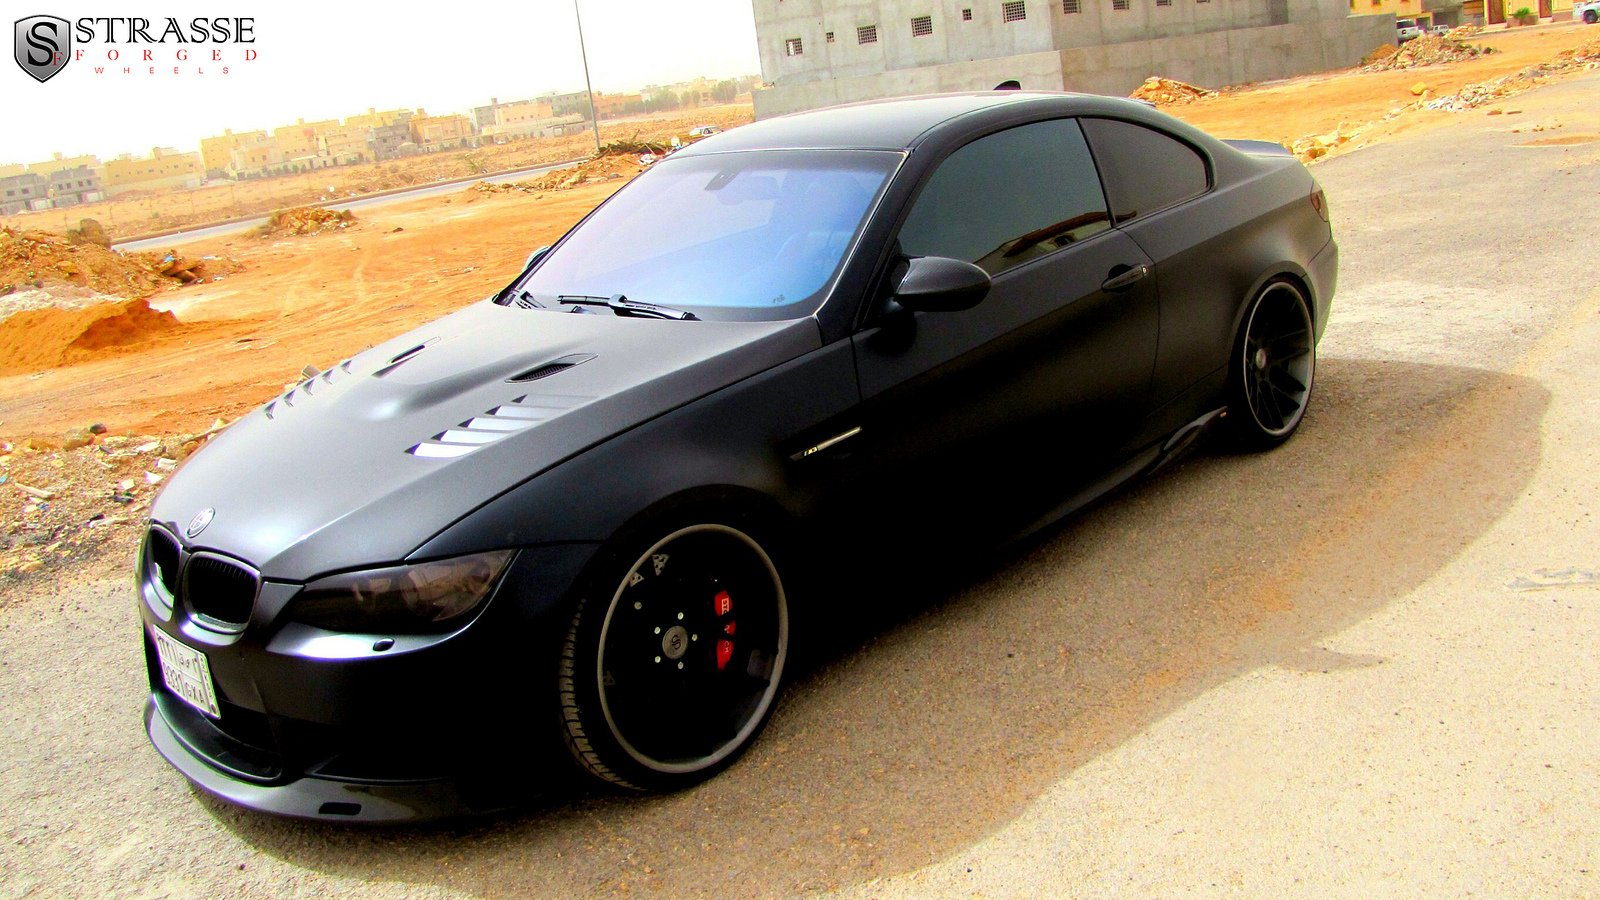 Bmw M3 E92 Black Strasse Wheels Tuning Cars Wallpaper